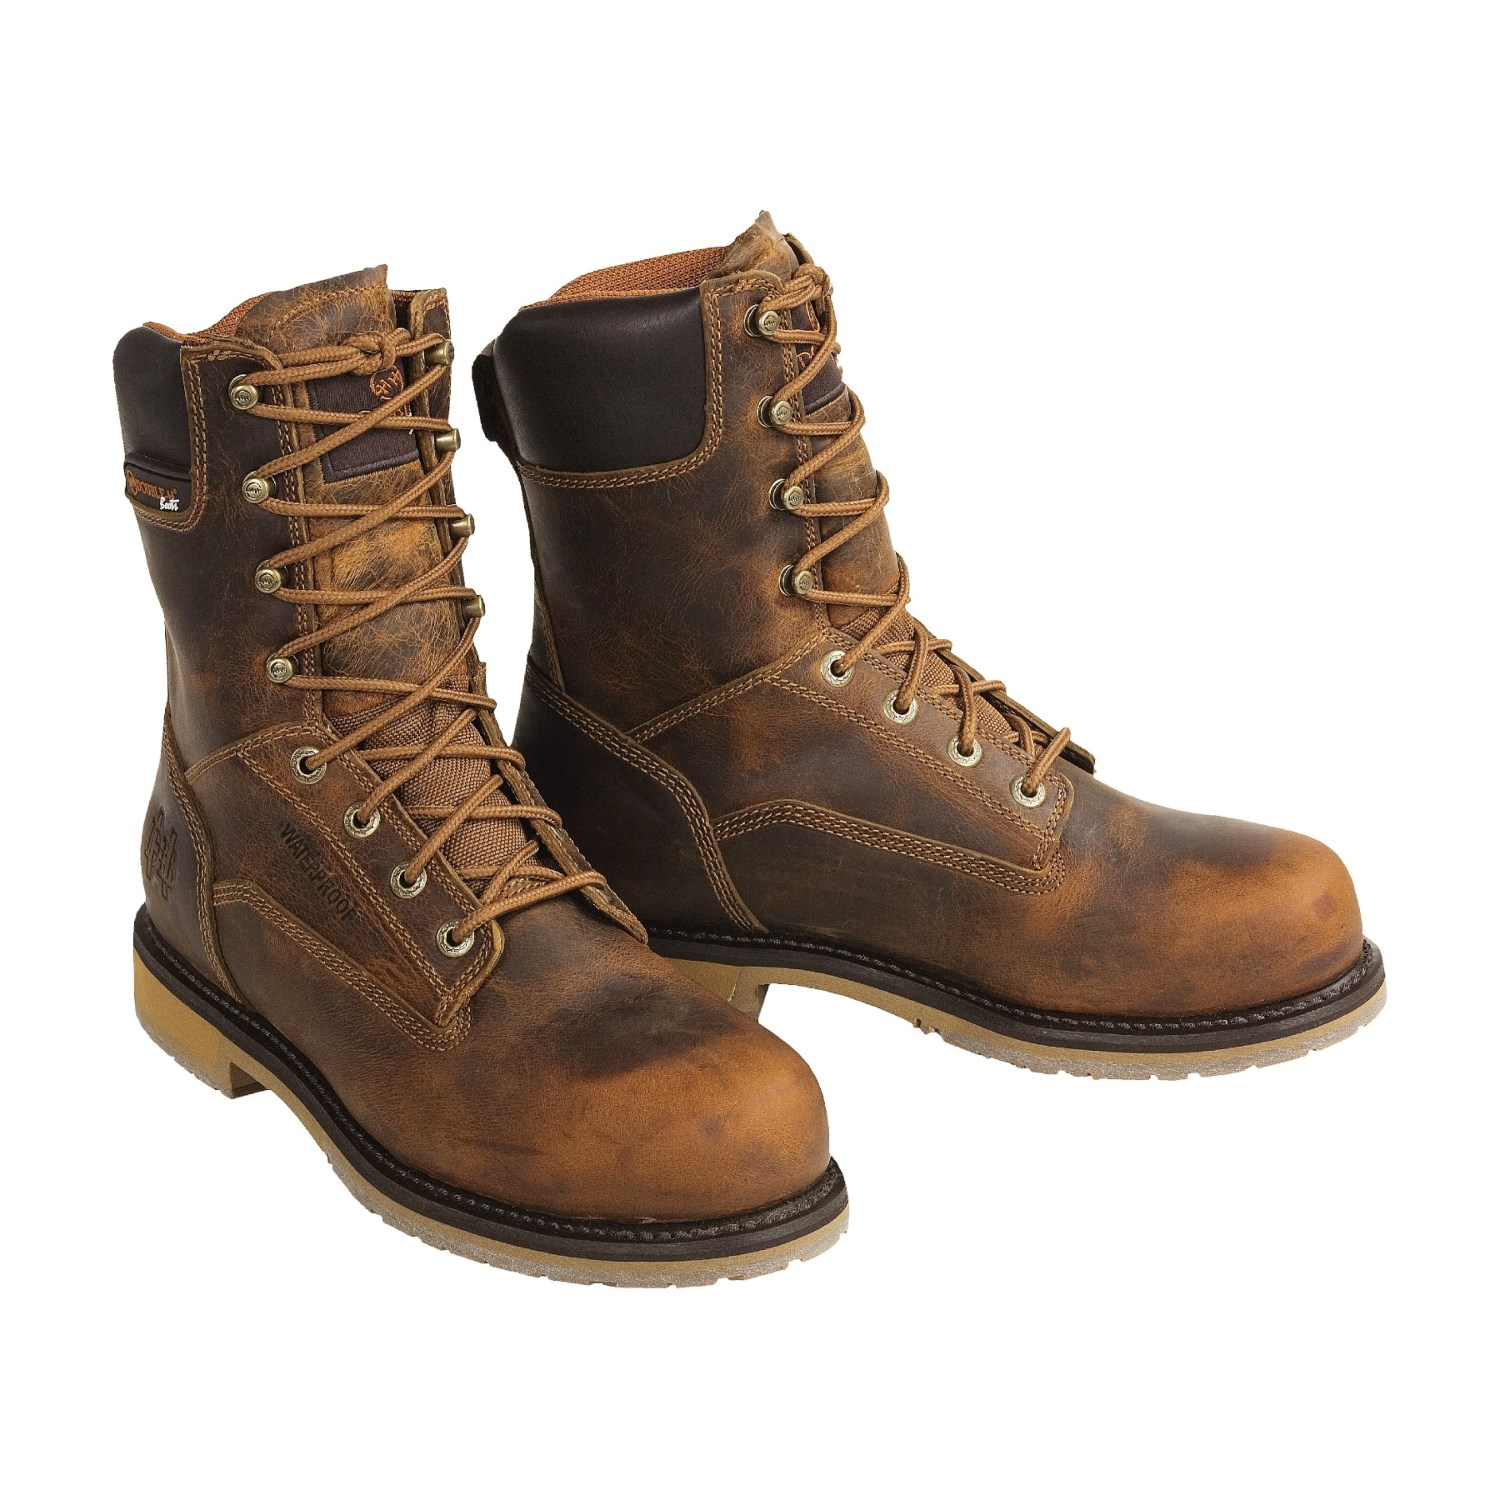 Double H Lace Up Work Boots For Men 1467h Save 57